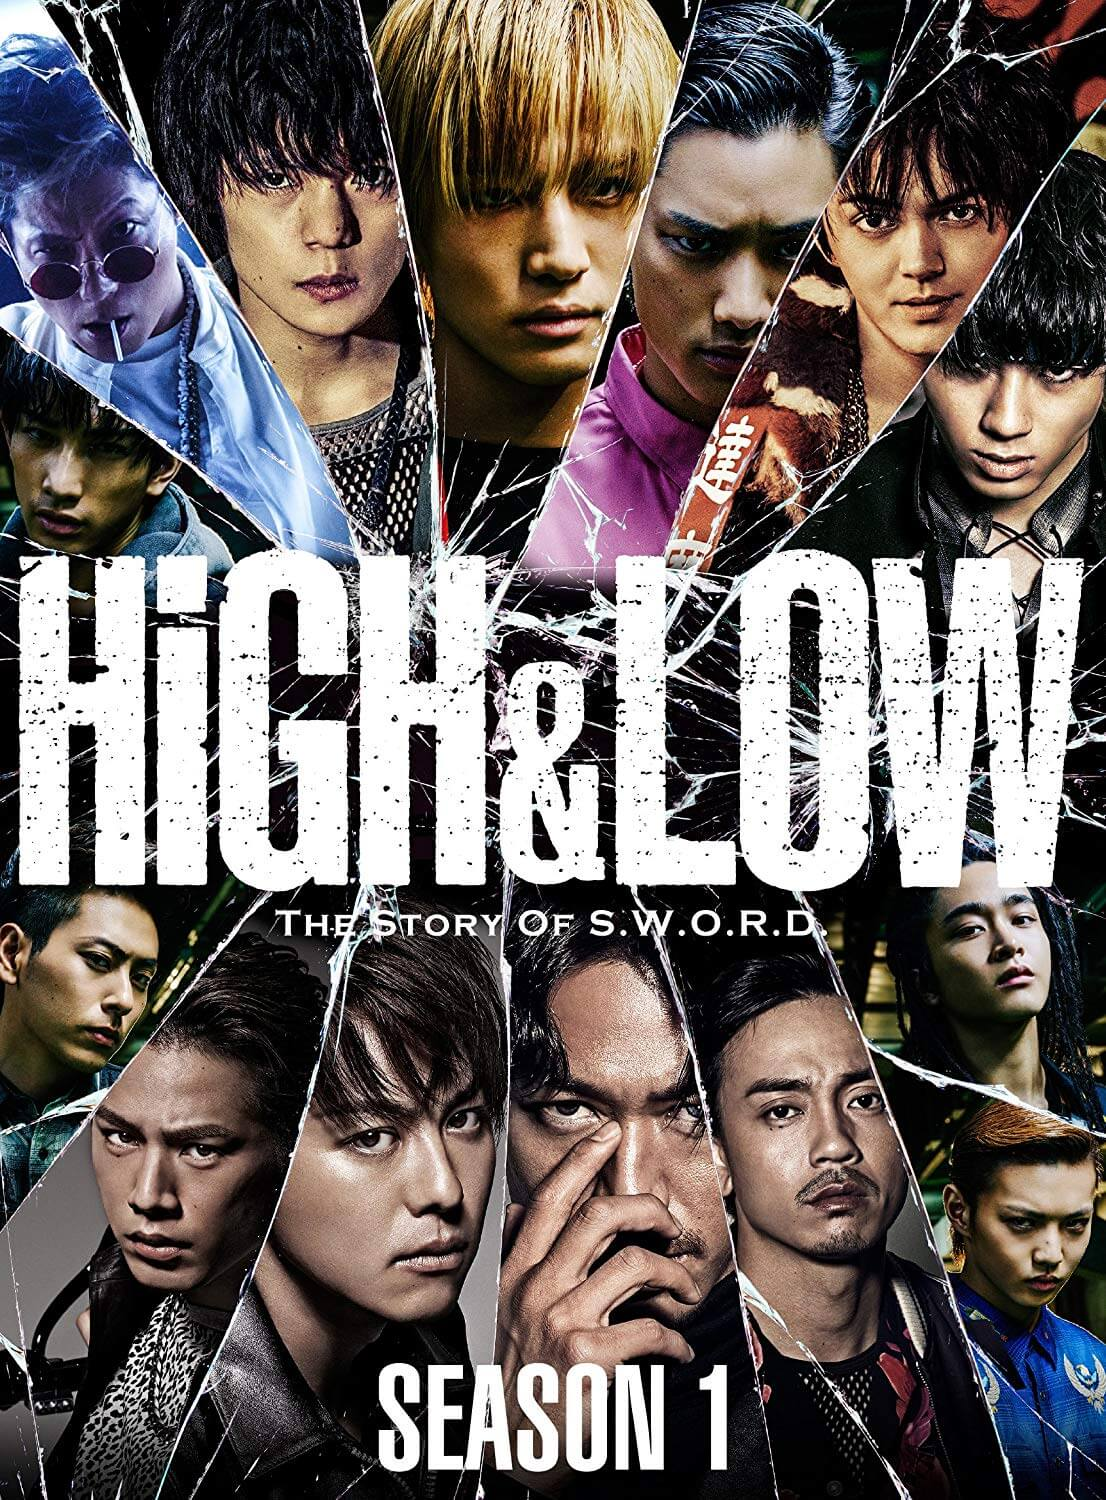 HiGH &LOW 〜THE STORY OF S.W.O.R.D.~Season1